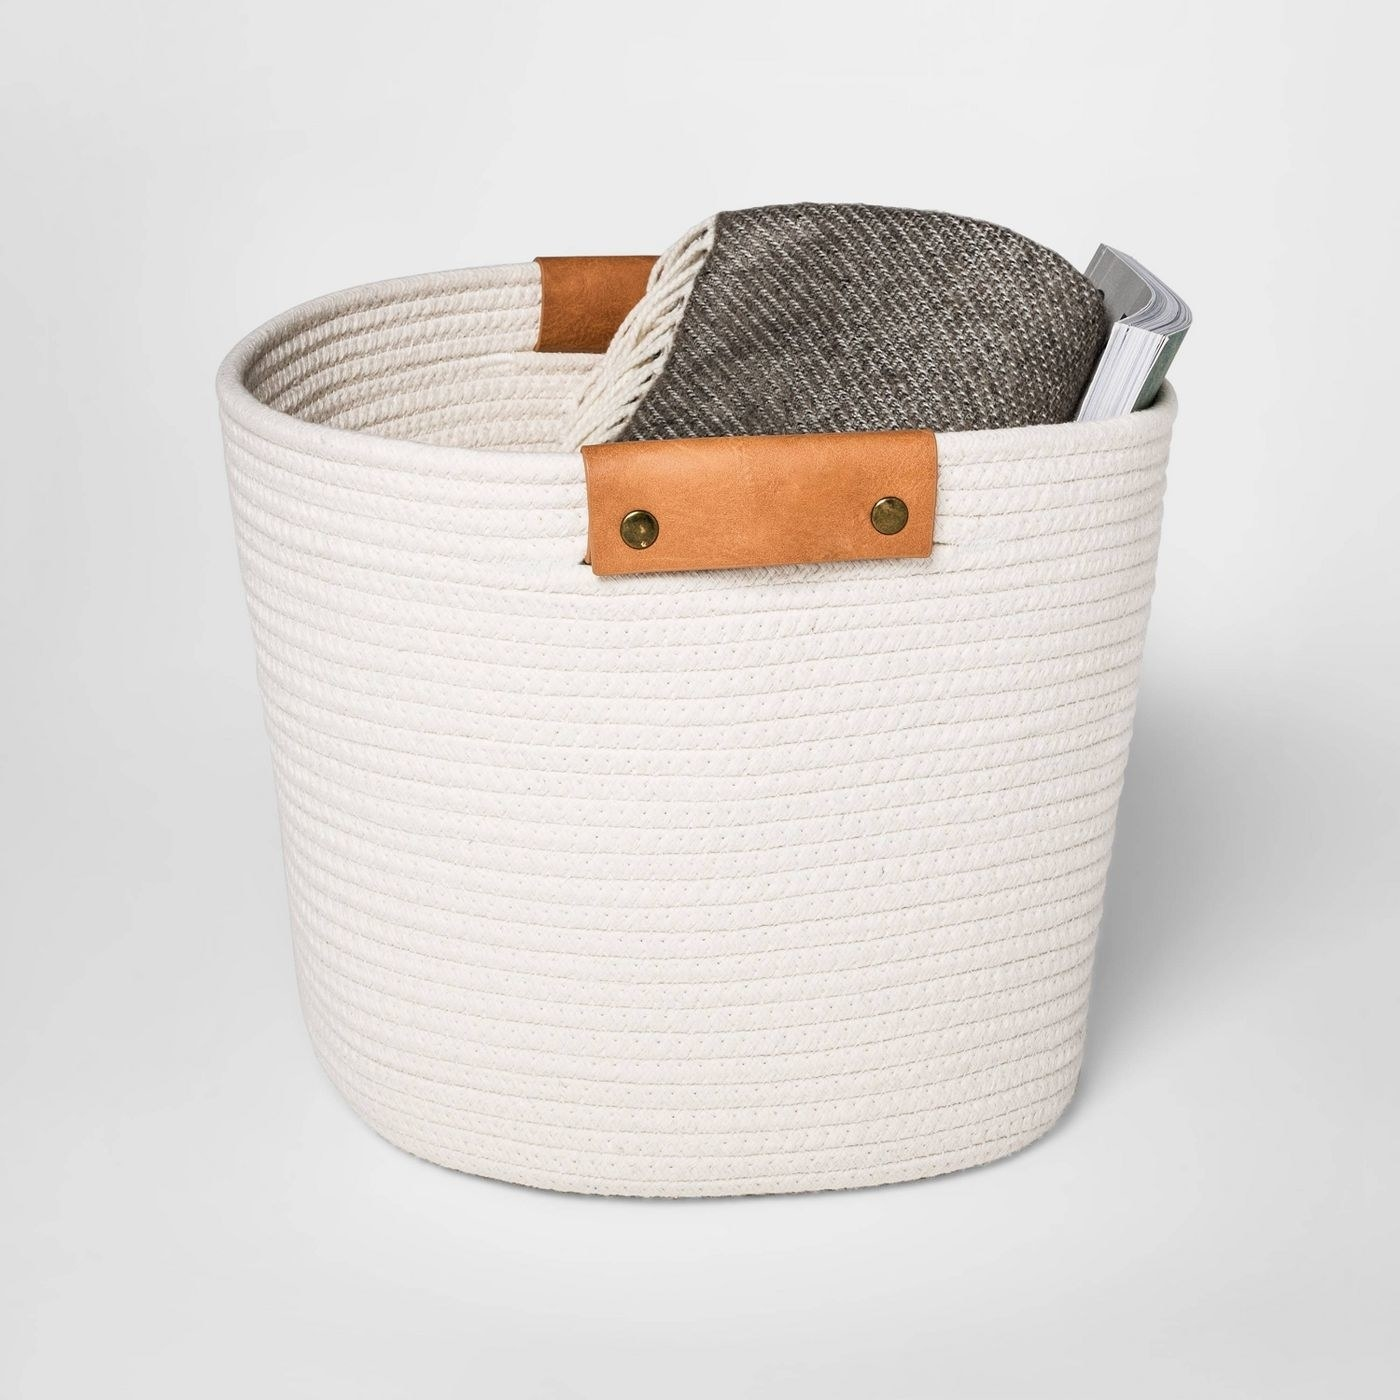 Off-white basket with blanket inside